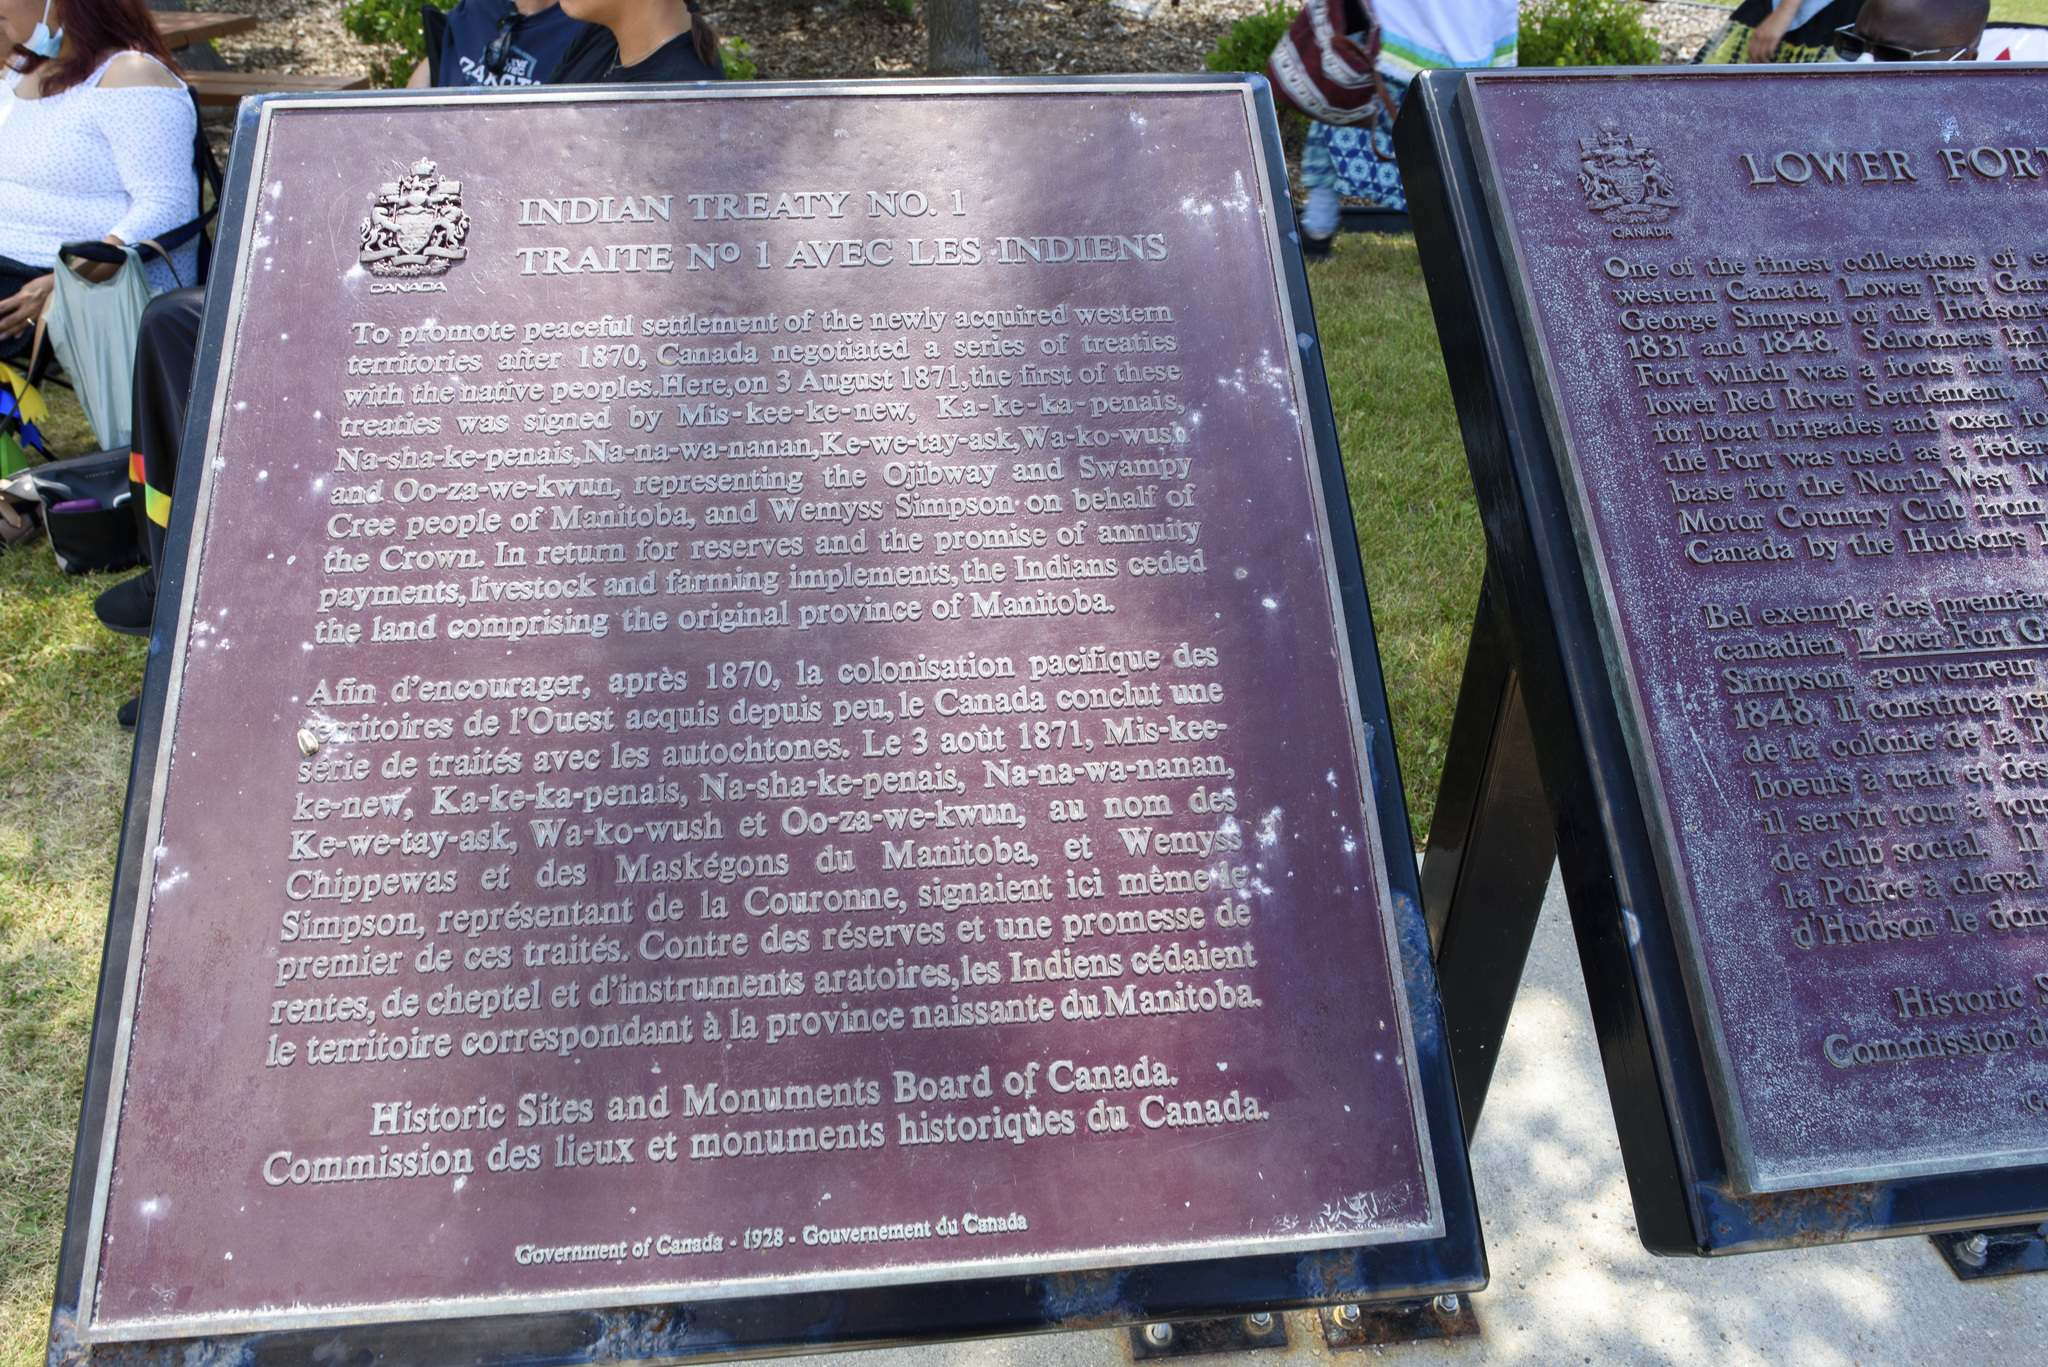 JESSE BOILY / WINNIPEG FREE PRESS</p><p>Plaques at Lower Fort Garry commemorate the signing of Treaty 1 in 1871.</p>